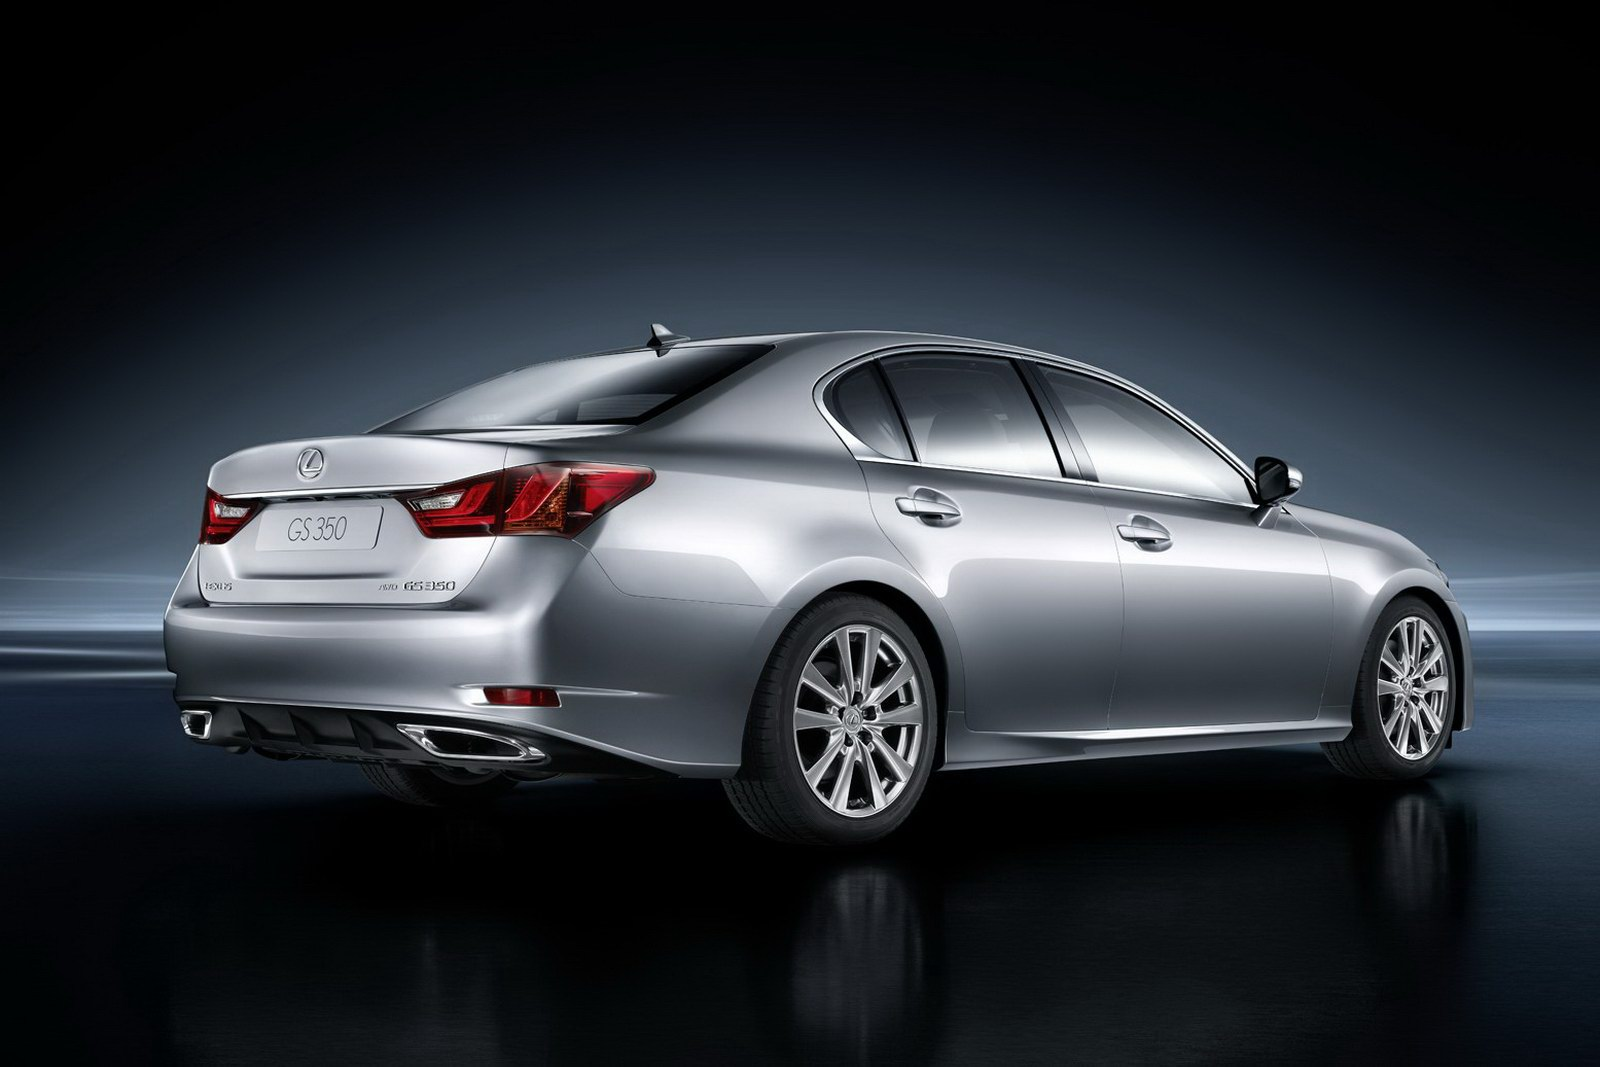 2013 Lexus GS Sedan Model 7 2013 Lexus GS Sedan Model  More Attractive and Elegant